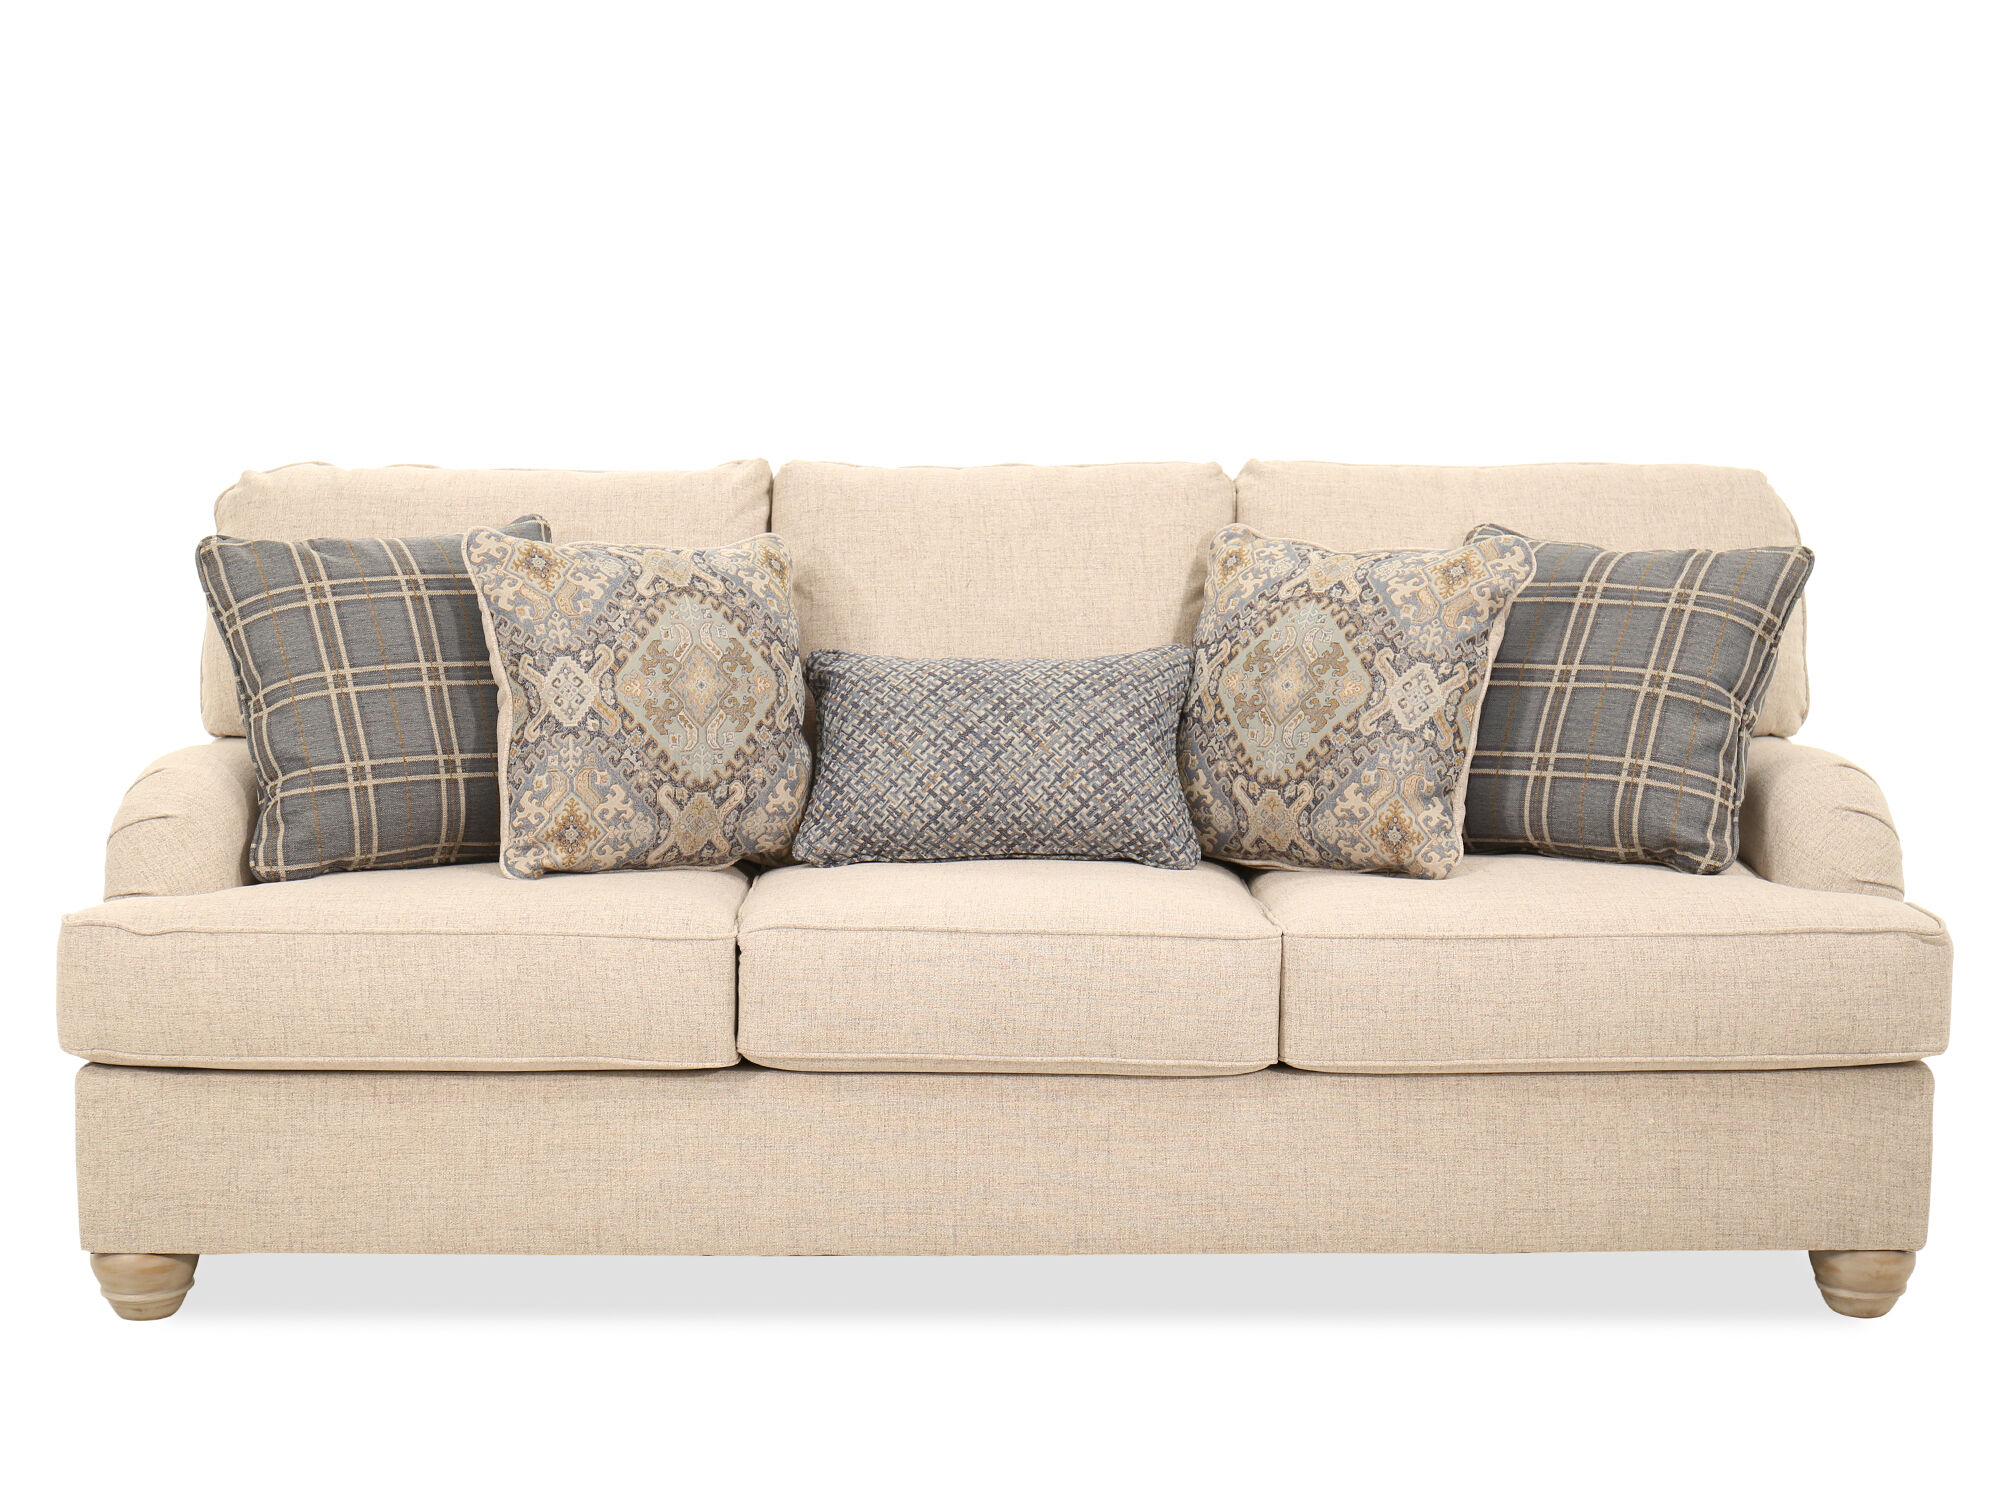 Casual 91u0026#39;u0026#39; Three Seater Sofa In Beige ...